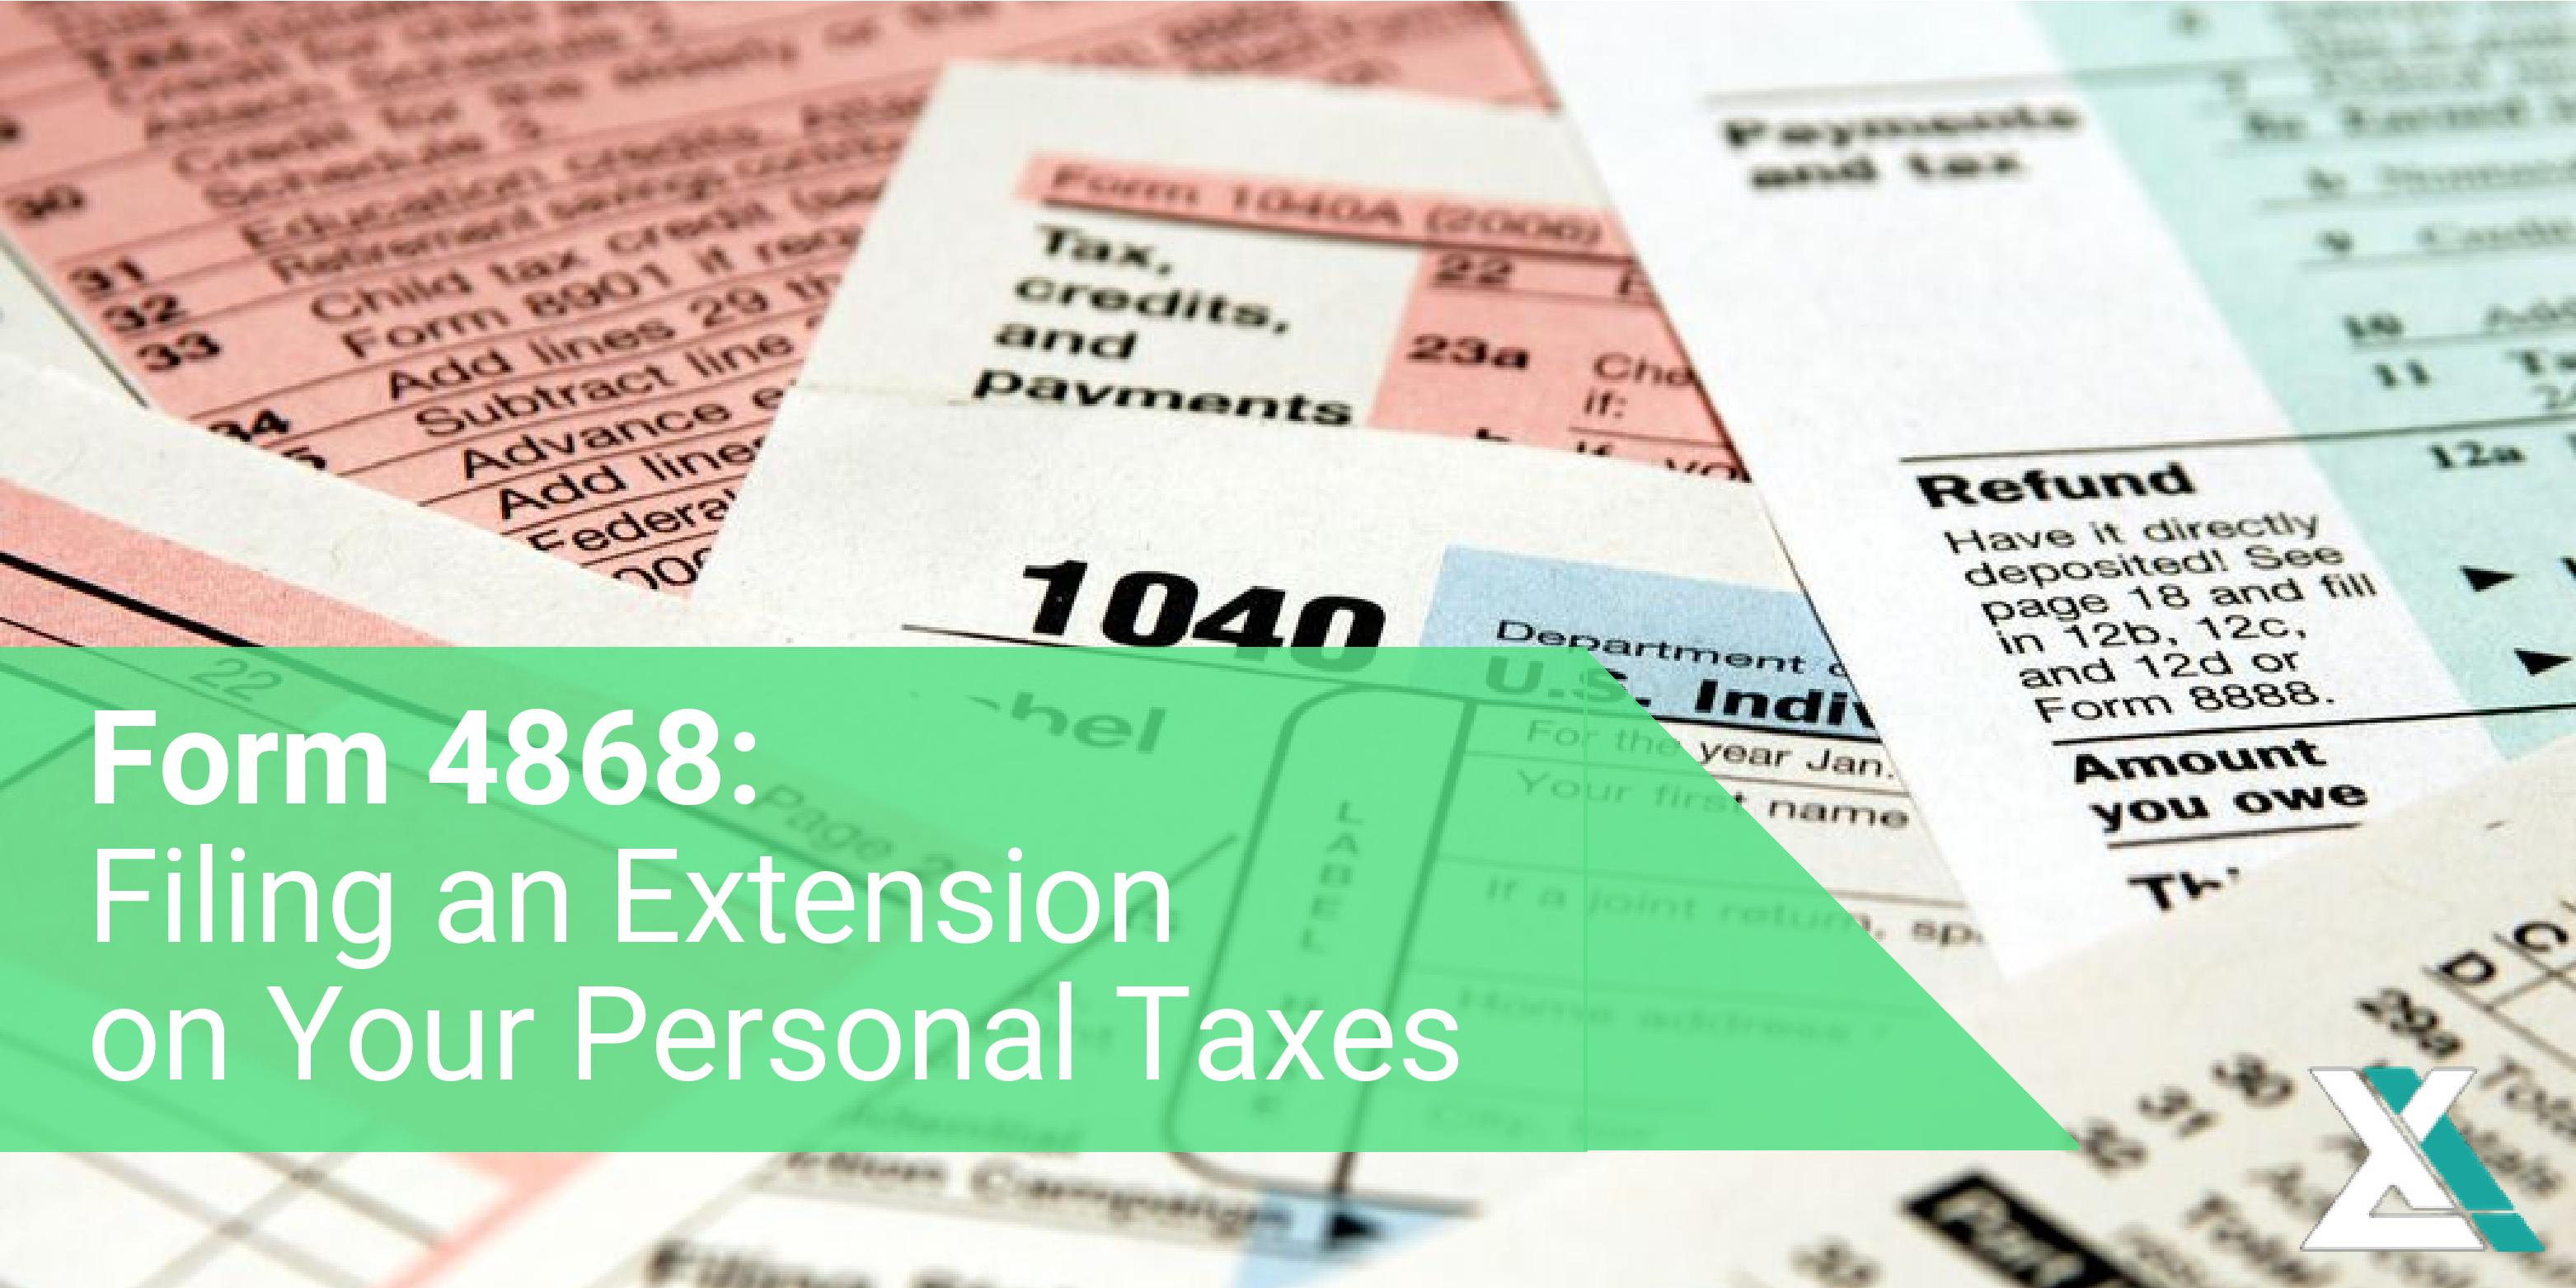 Form 4868: How to Get an Extension on Your Personal Taxes